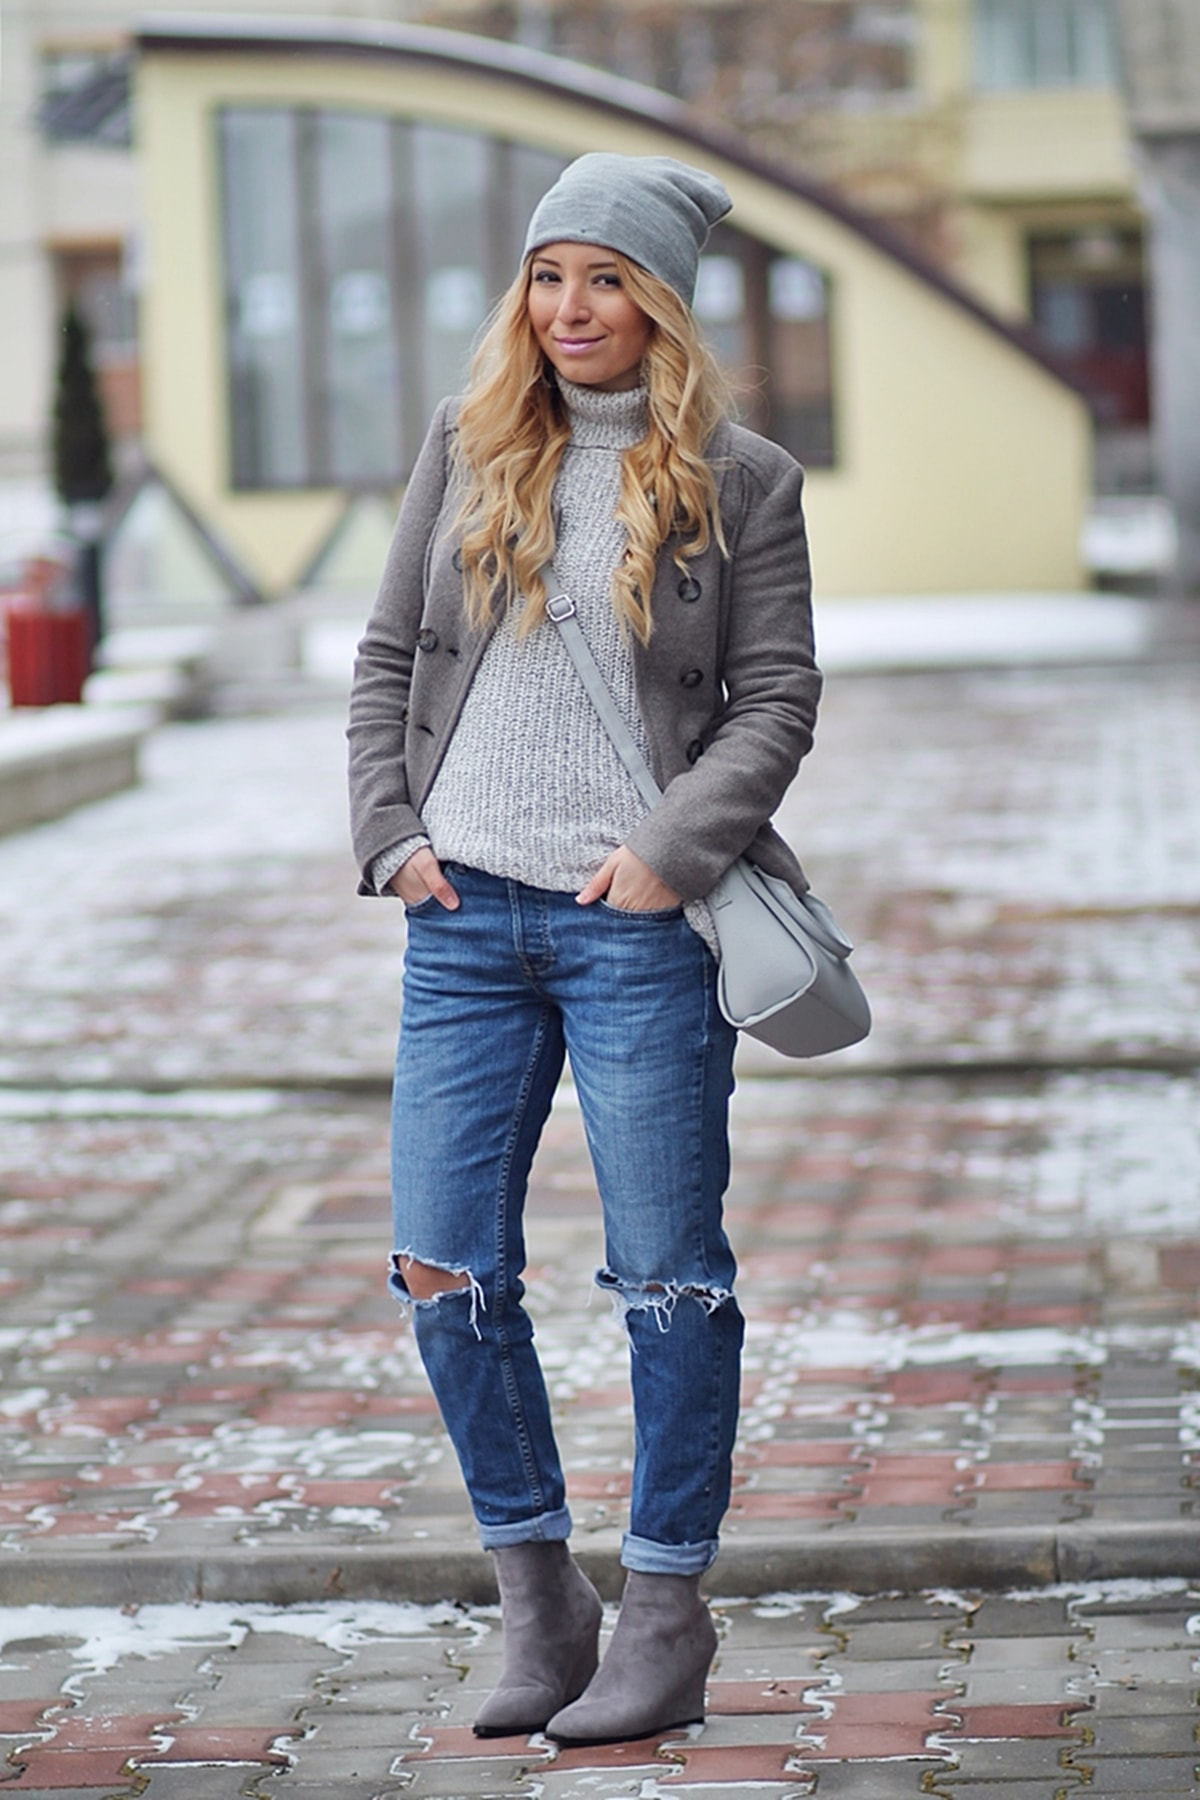 street style, grey outfit, winter look, ripped jeans, grey boots, sweater, beanie, bag, coat, jacket